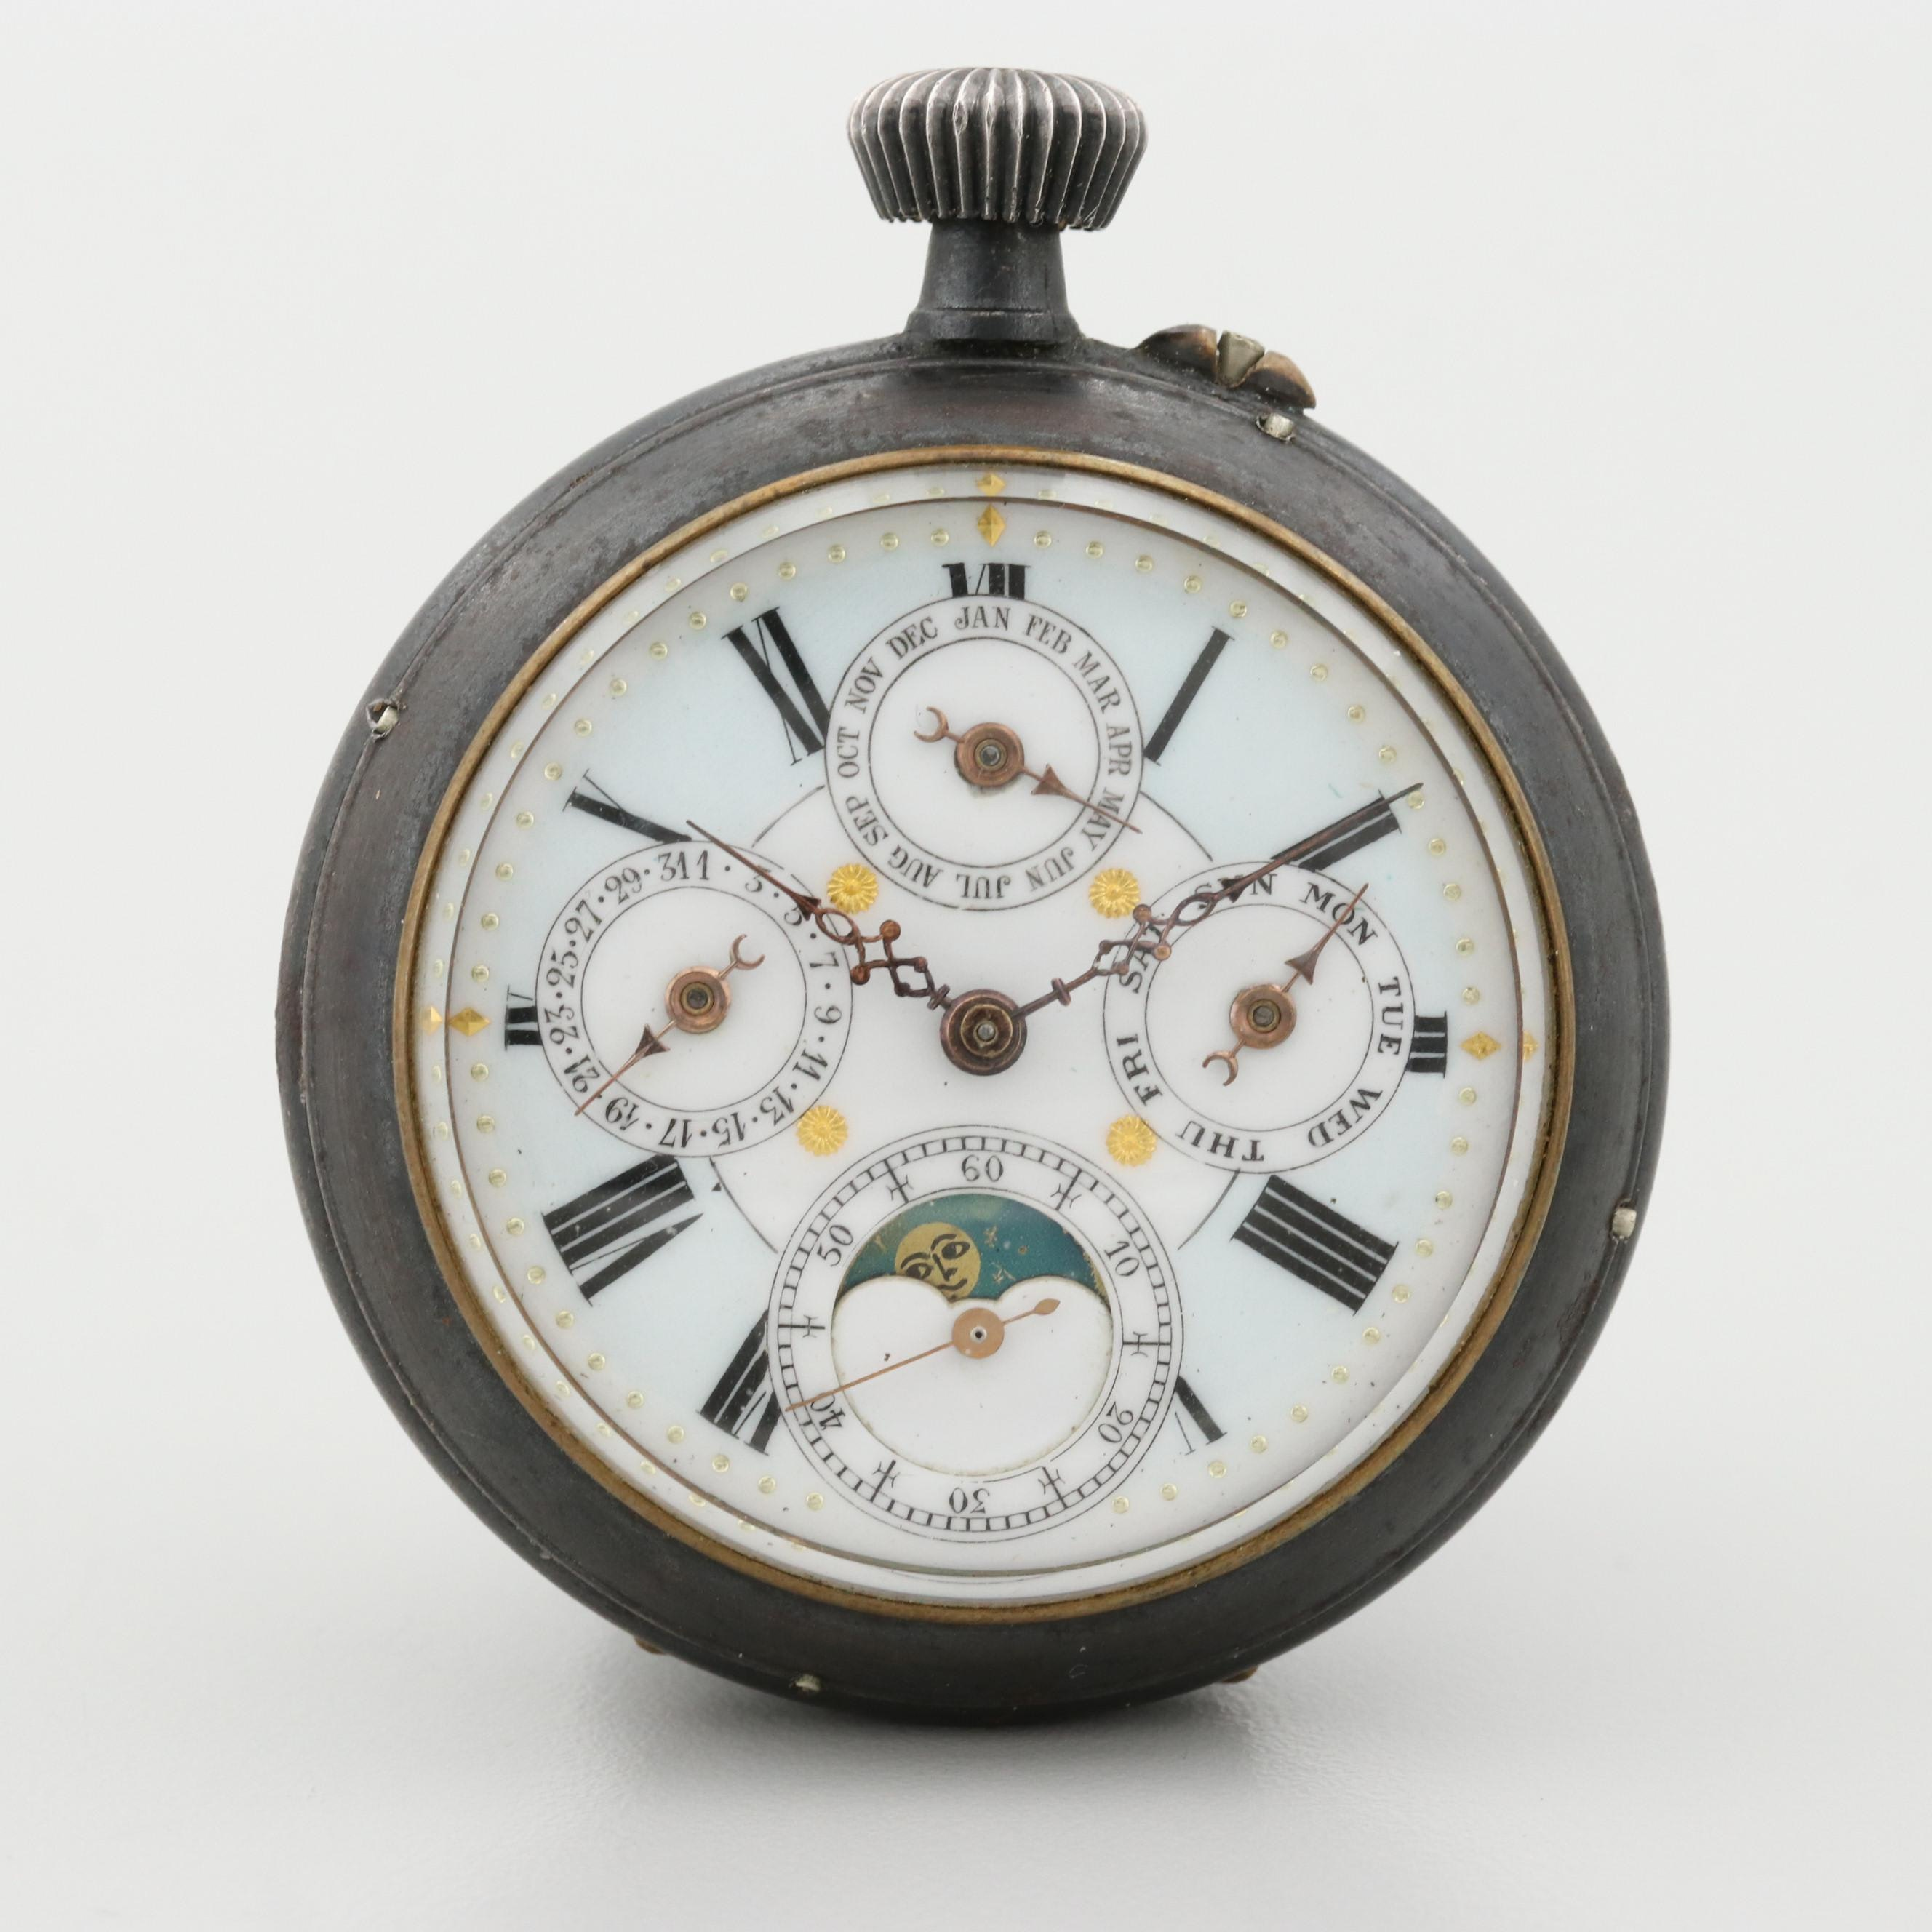 Vintage Swiss Triple Date Pocket Watch With Moon Phase Indicator